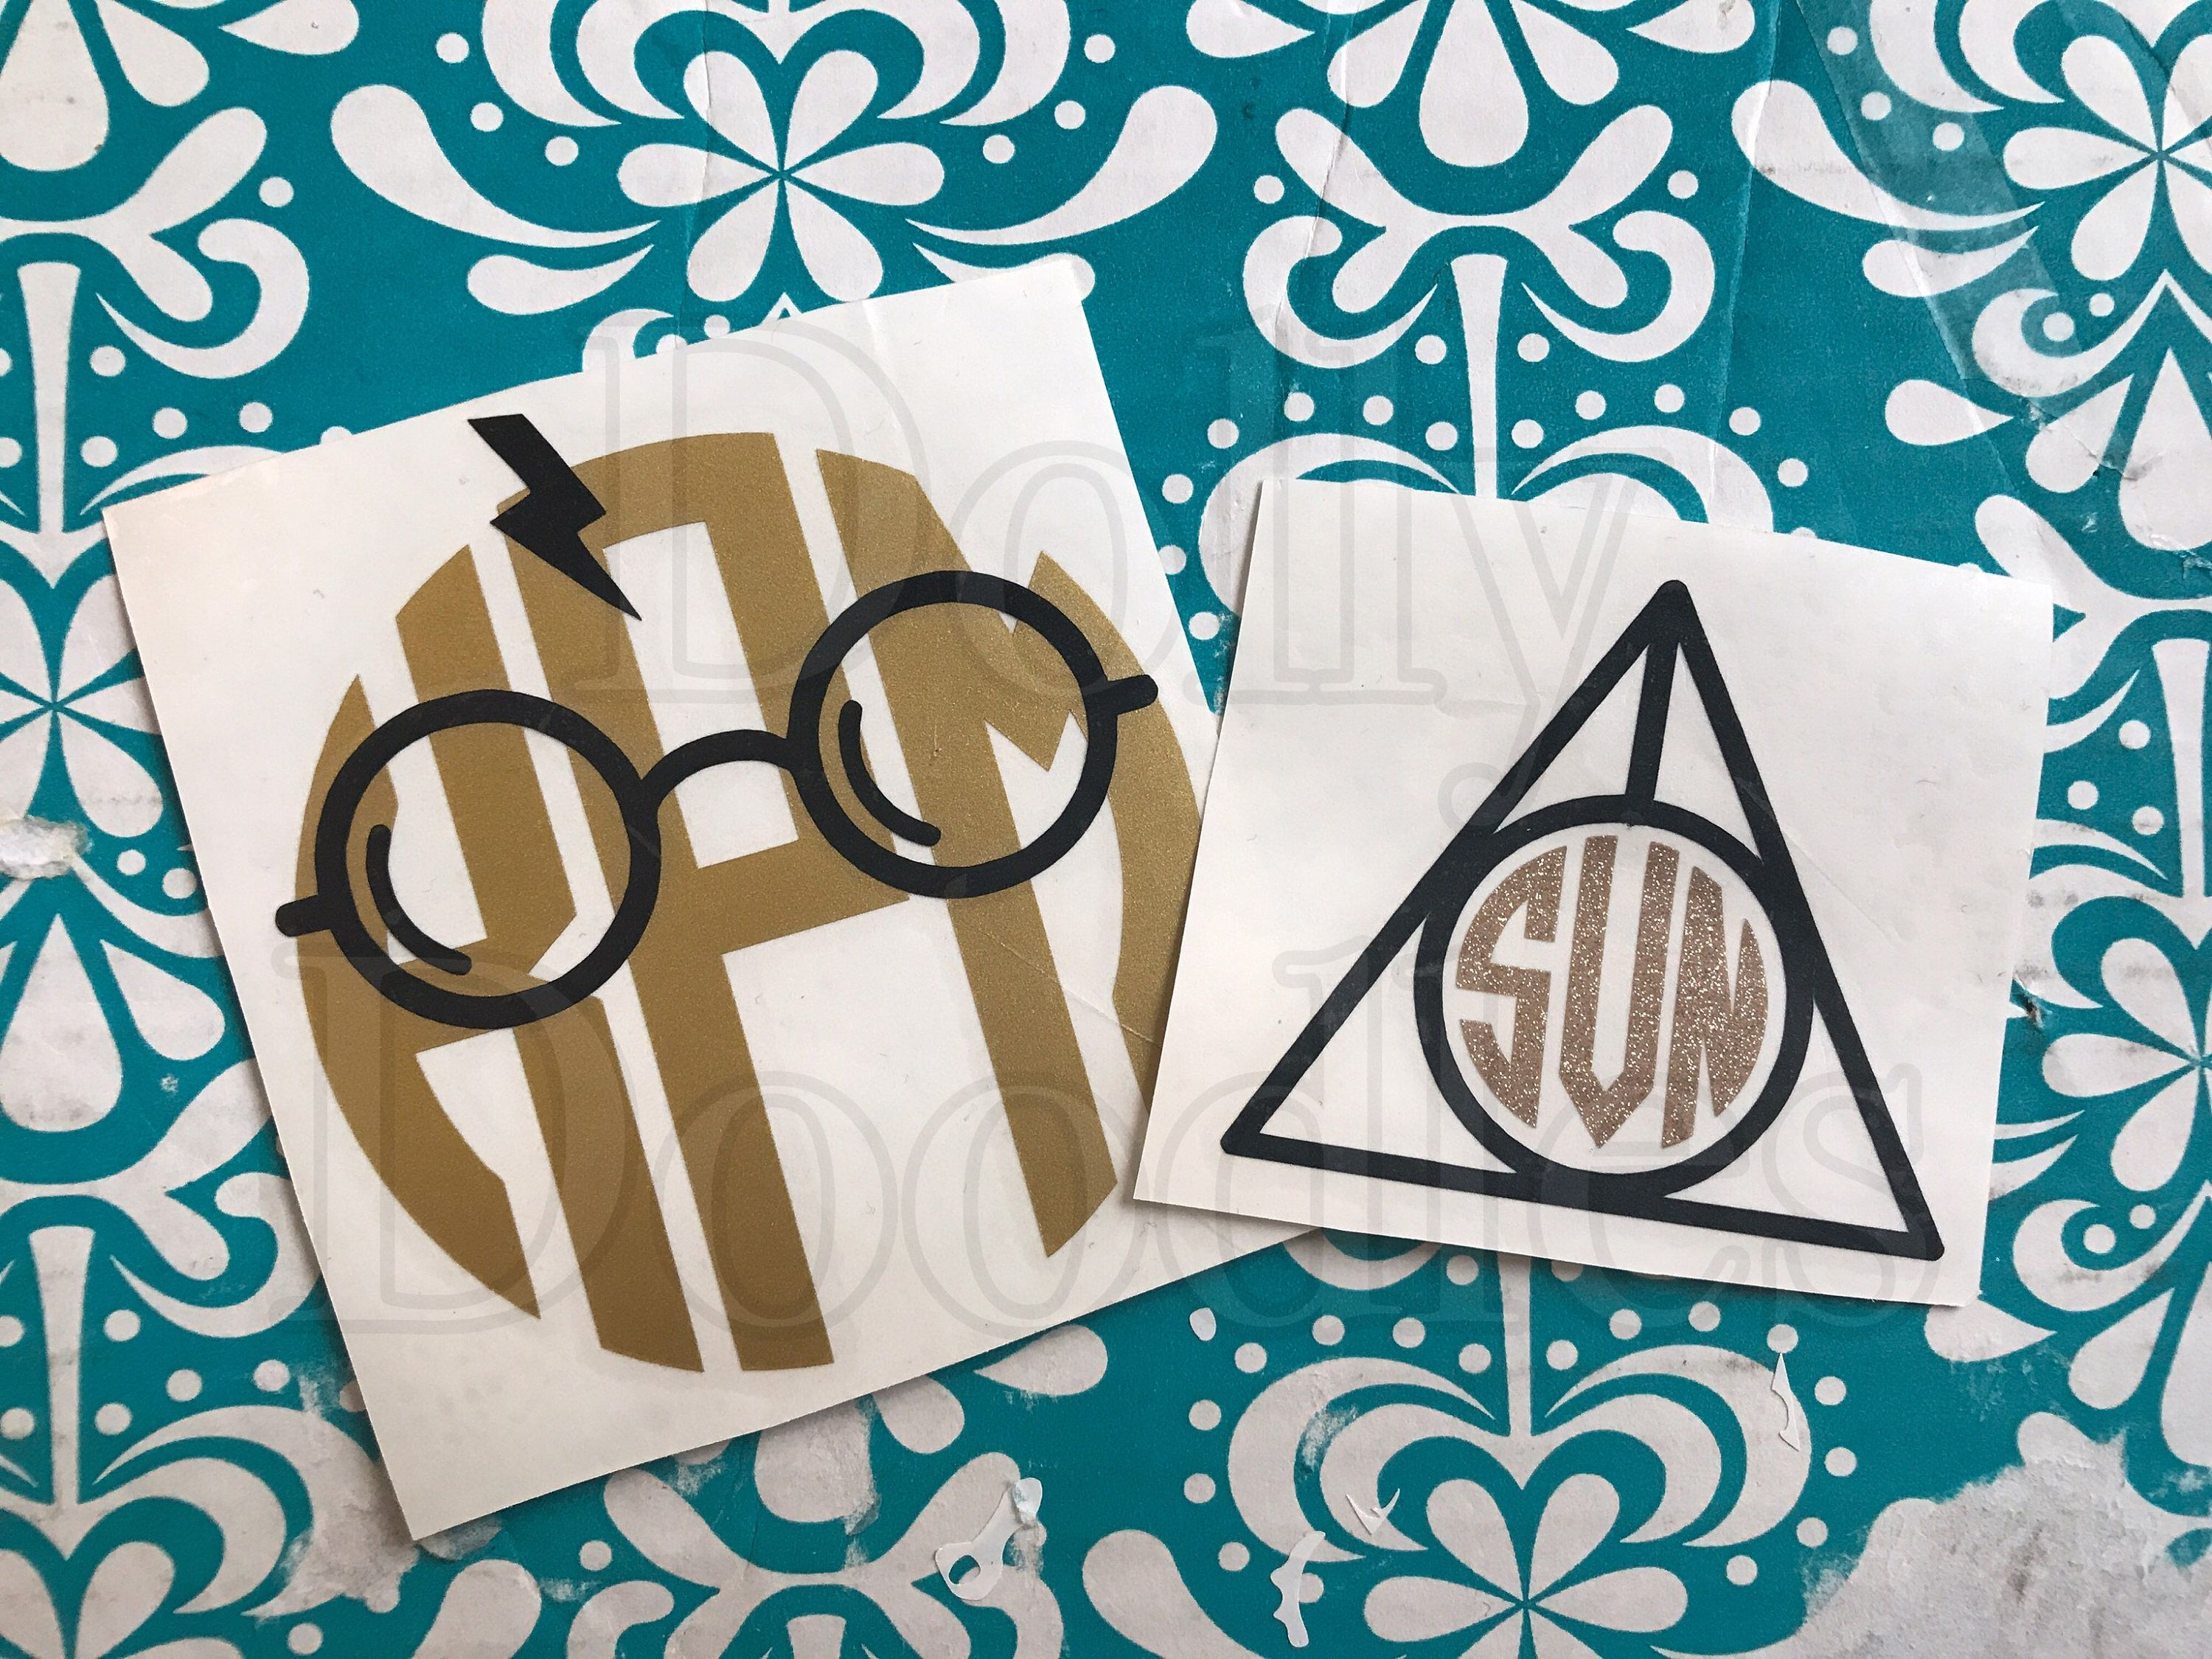 Harry Potter Monogram Decal 4 Different Frame Options